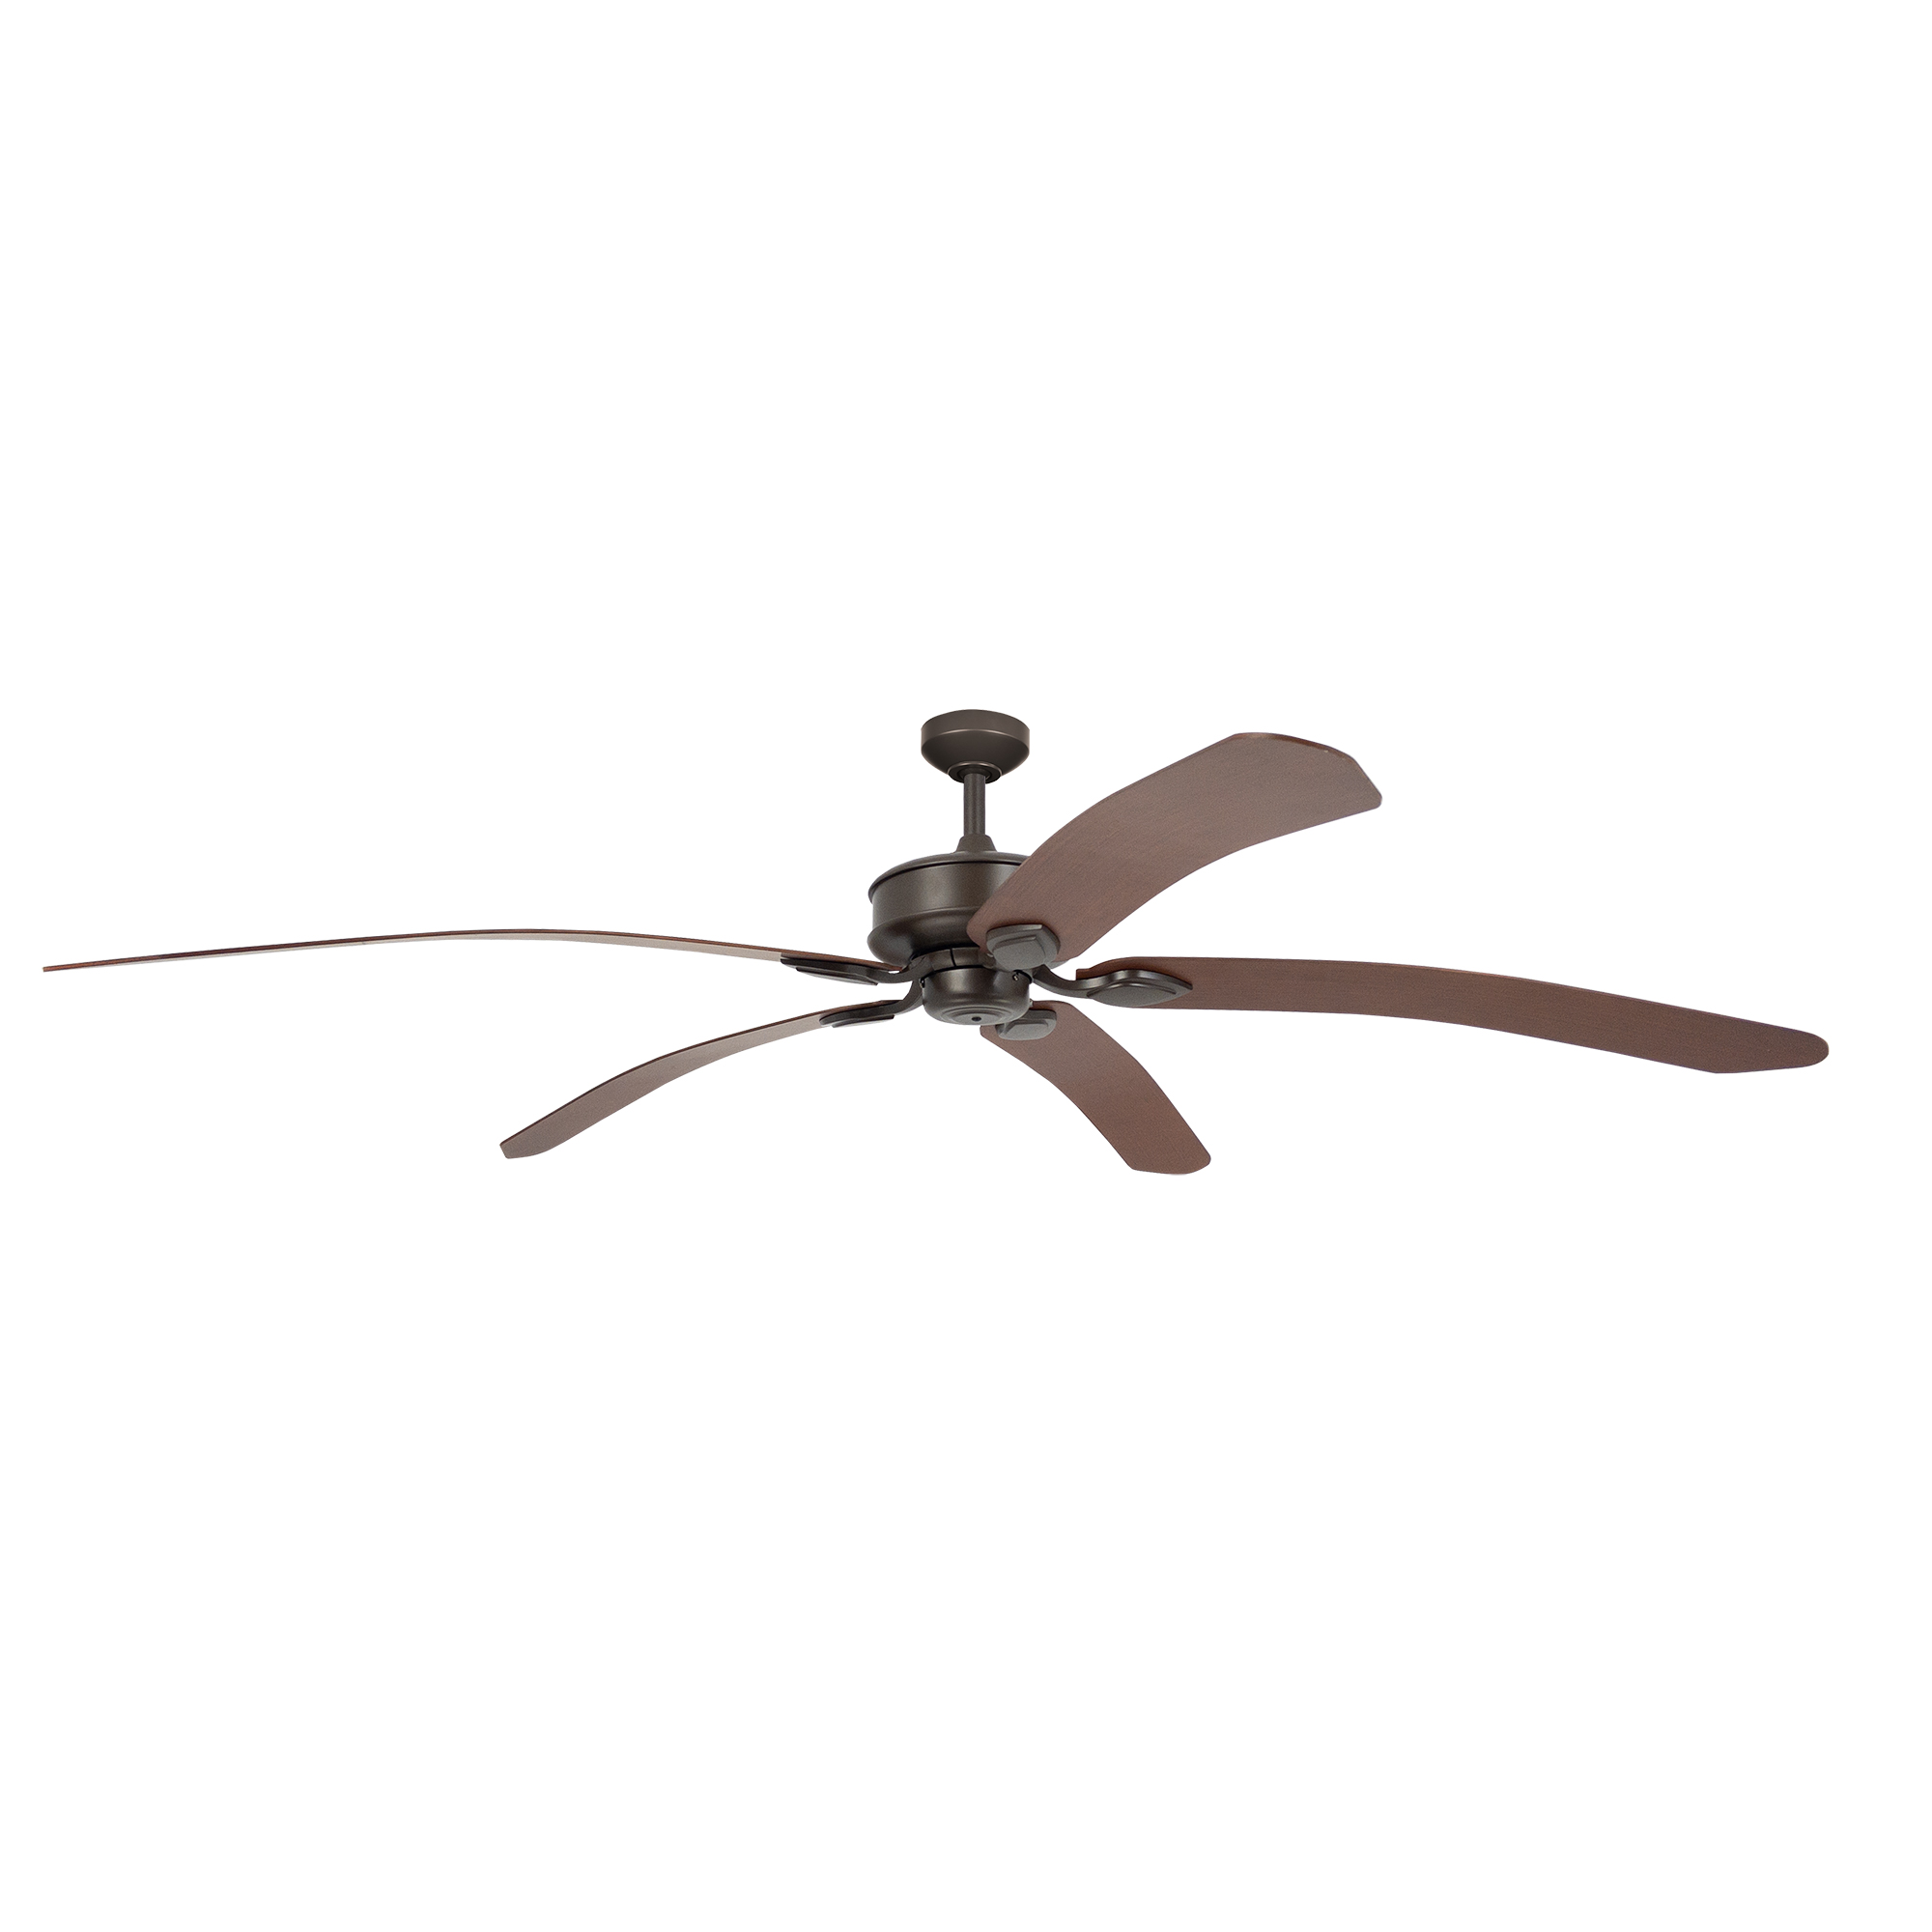 """72"""" Tropicana Ceiling Fan in Oil-rubbed Bronze with Walnut blades"""